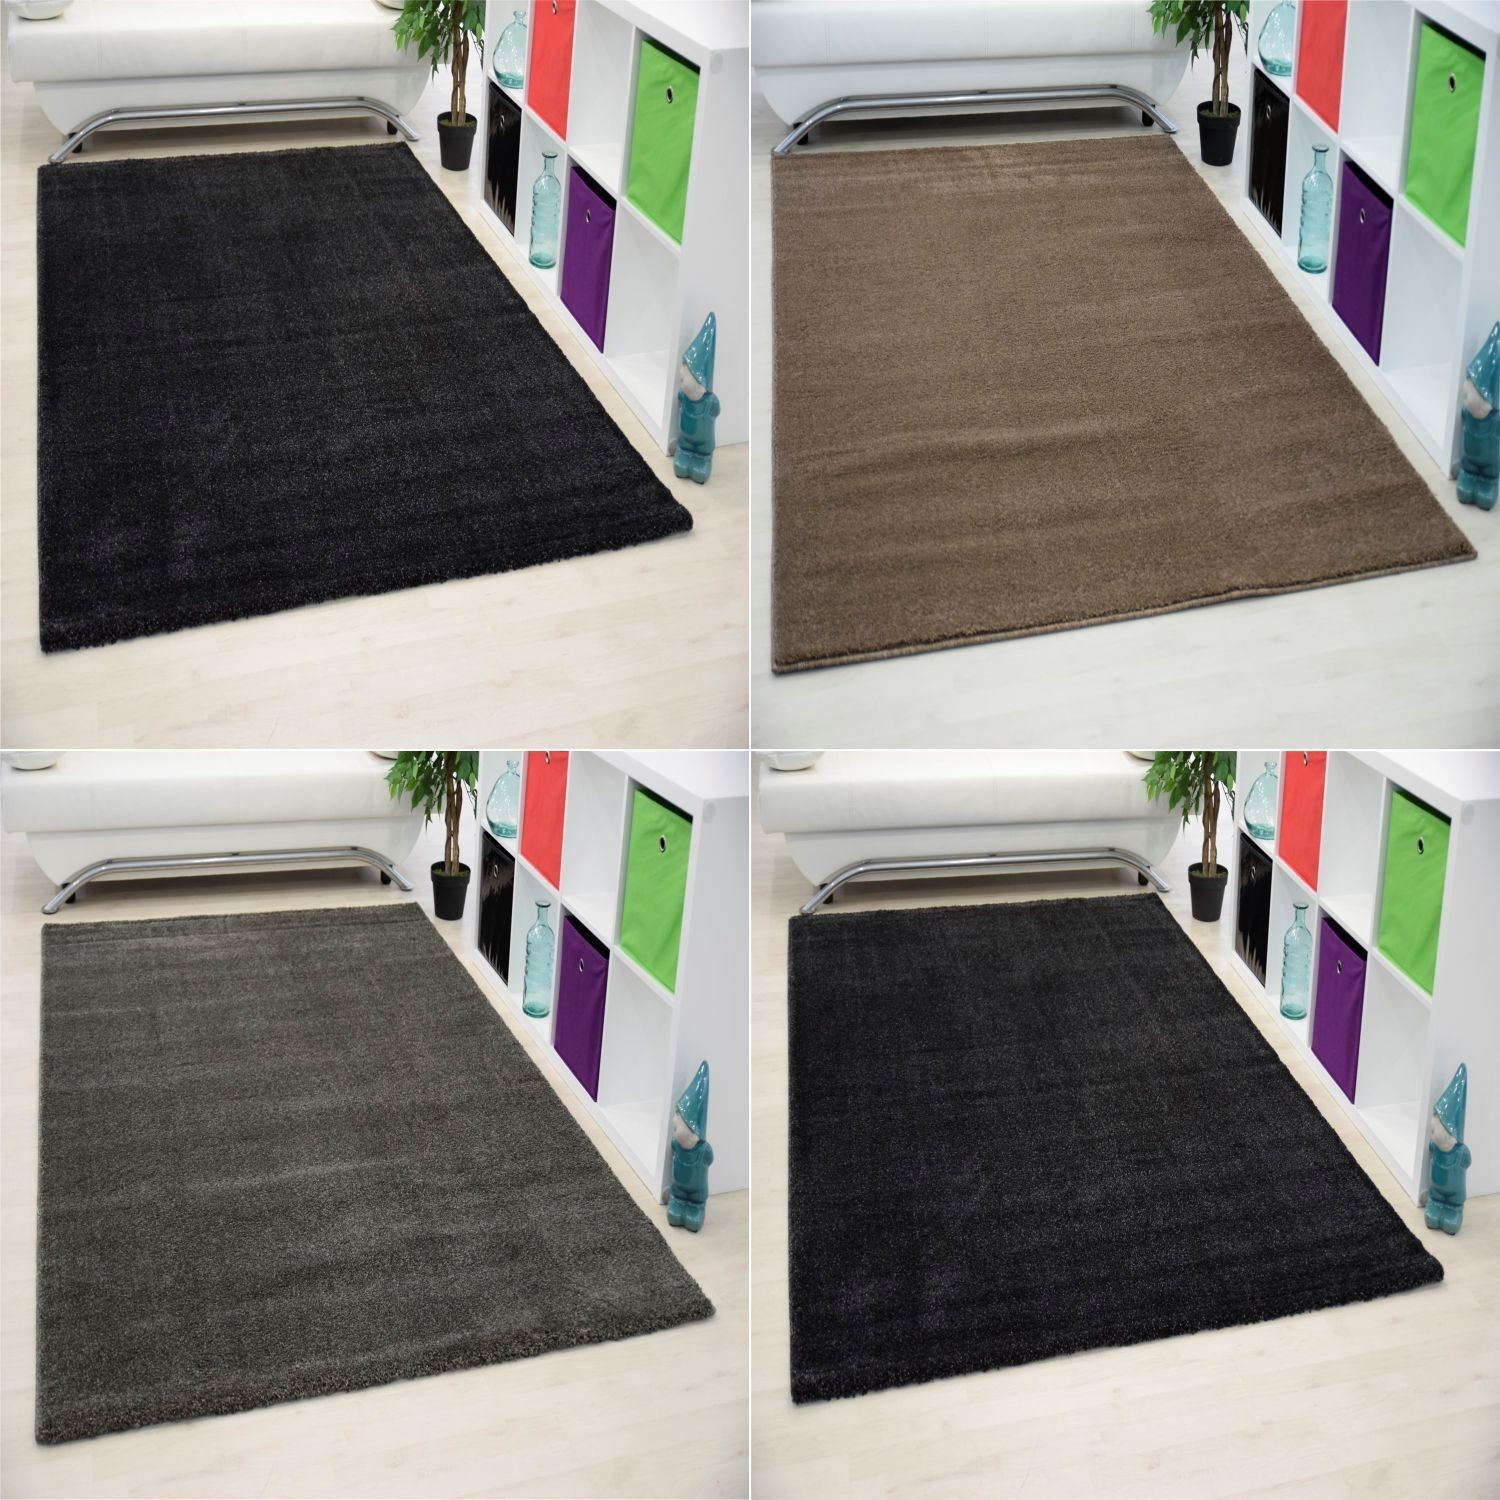 Grand Tapis Gris Pas Cher Grand Tapis Salon